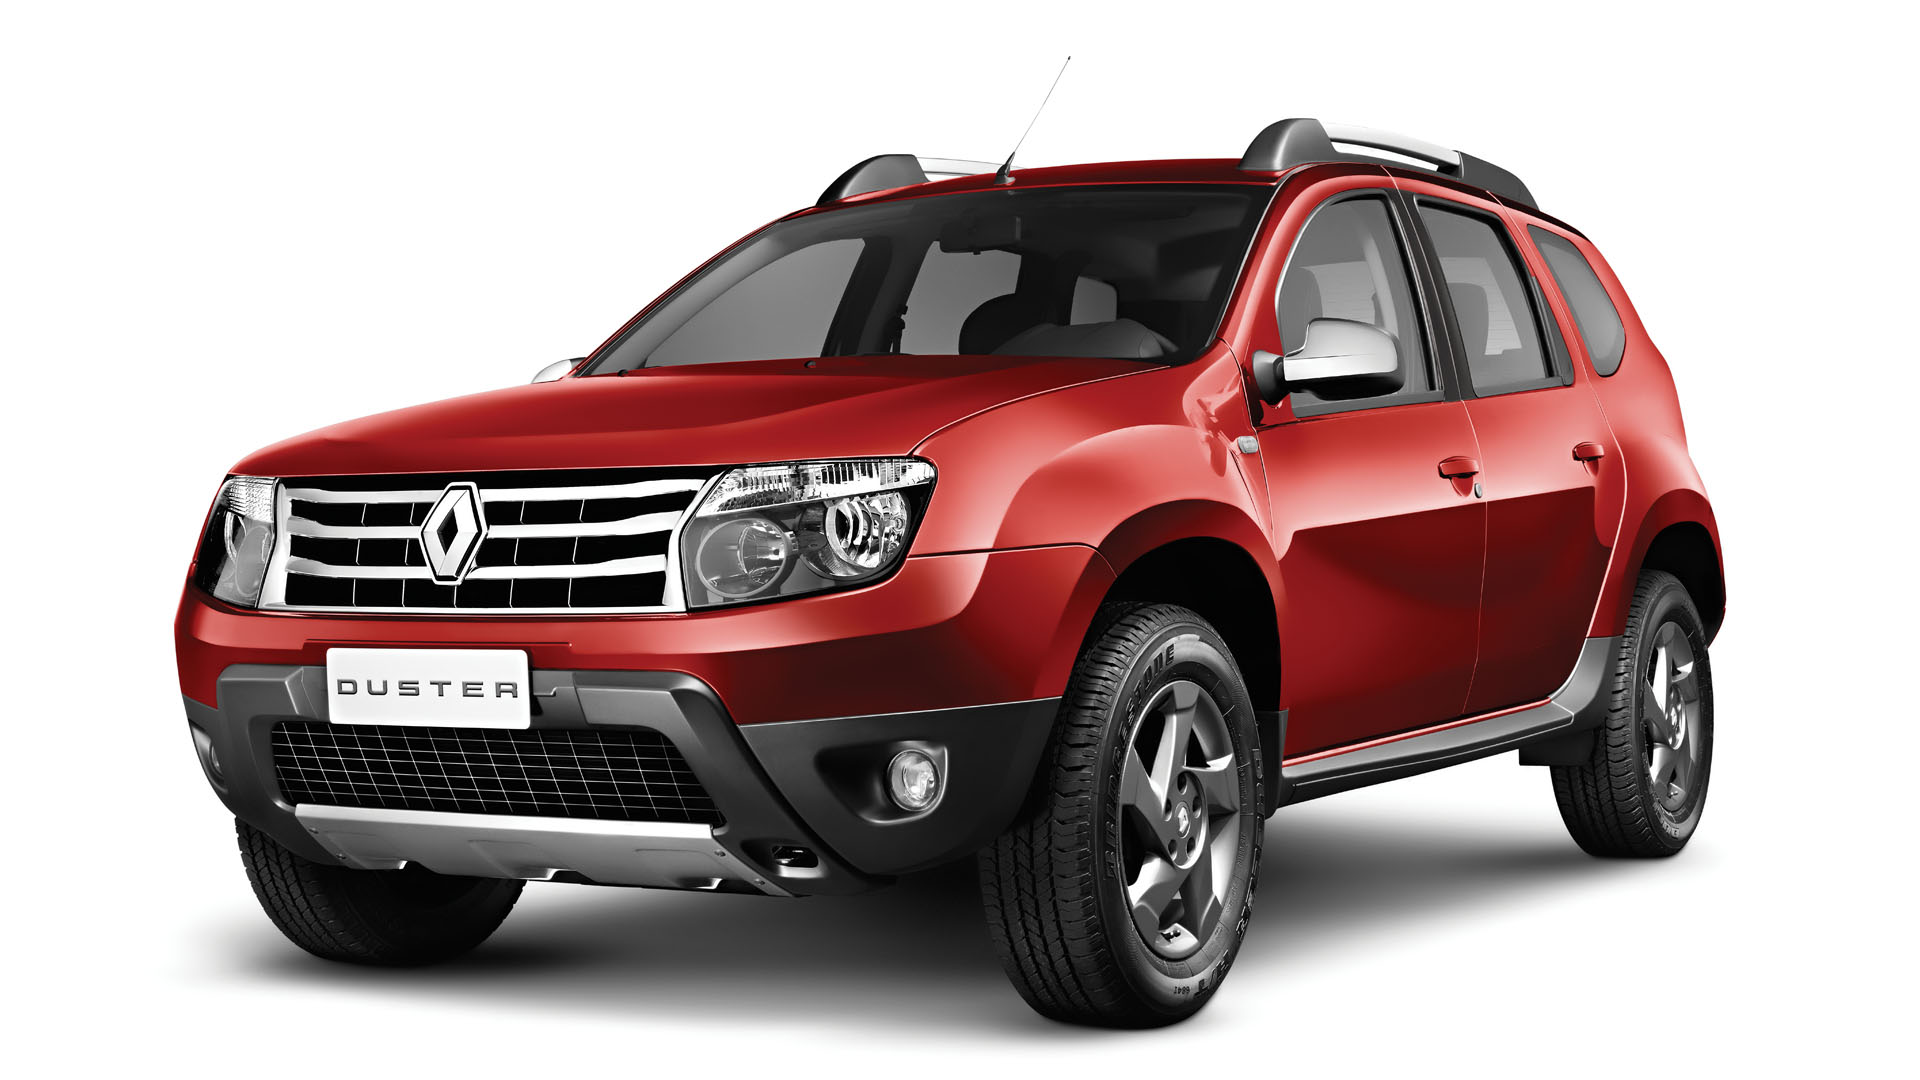 renault duster 2015 model available for rent to own 1600 x 48 month 15000 dp qatar living. Black Bedroom Furniture Sets. Home Design Ideas